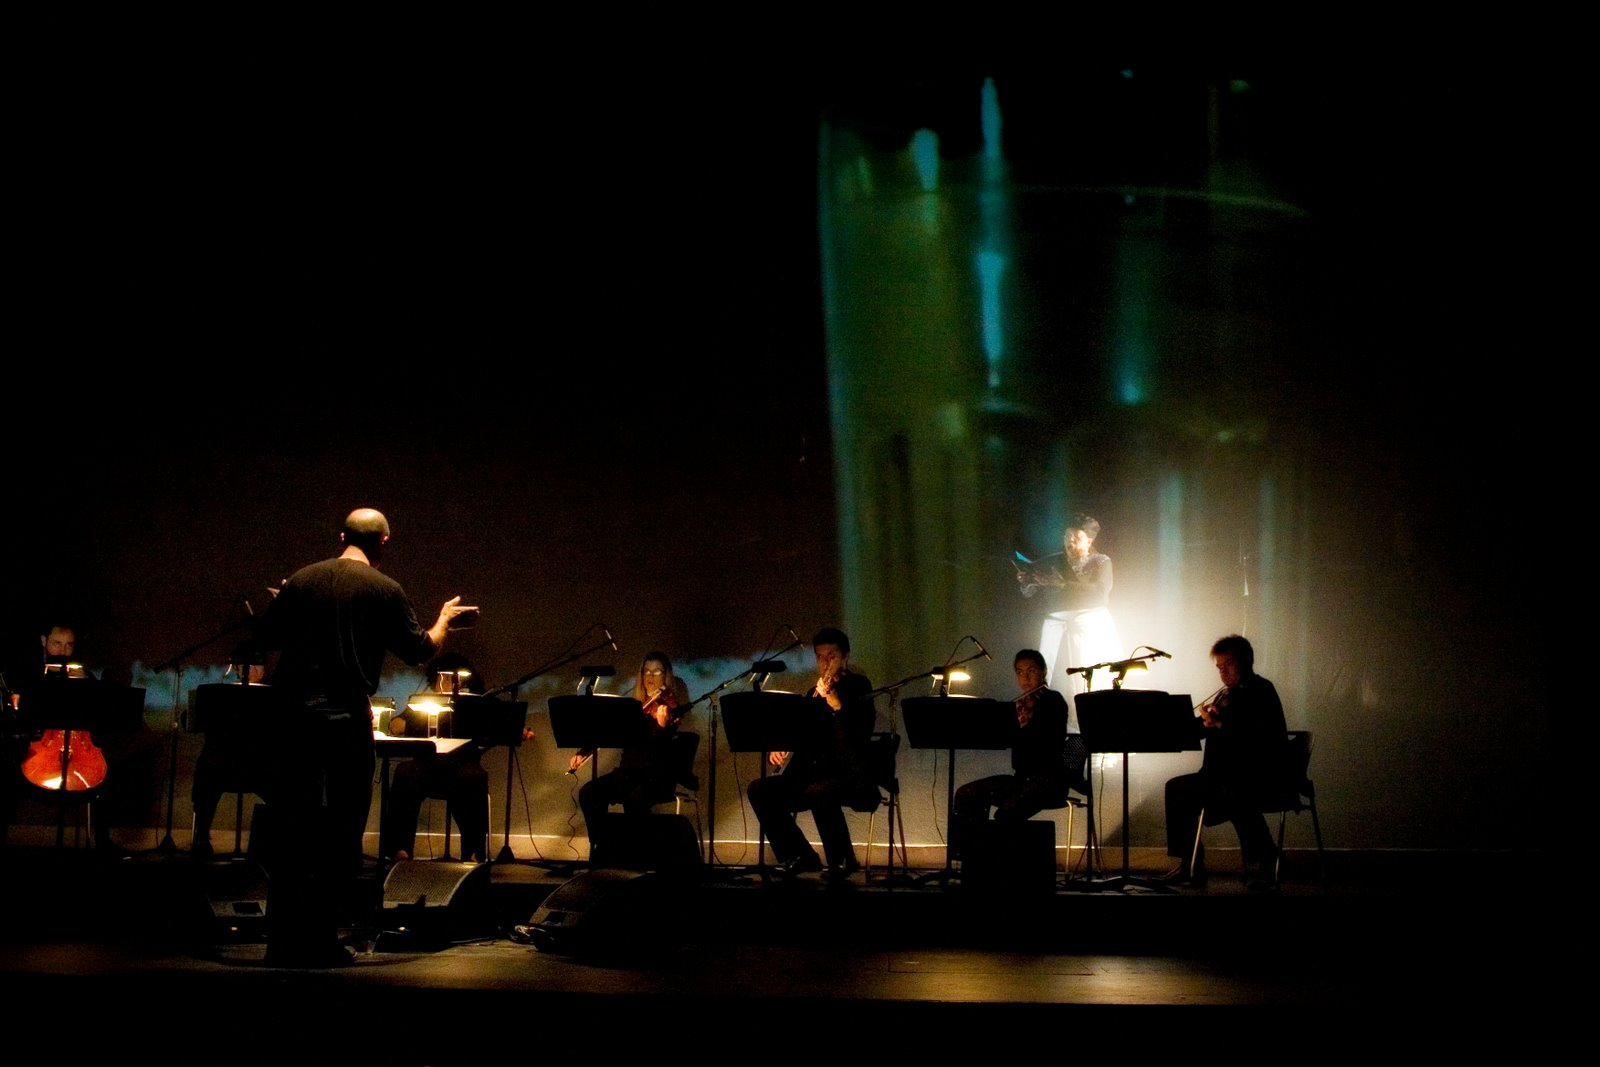 Soloist Up-Stage of Scrim with Projections